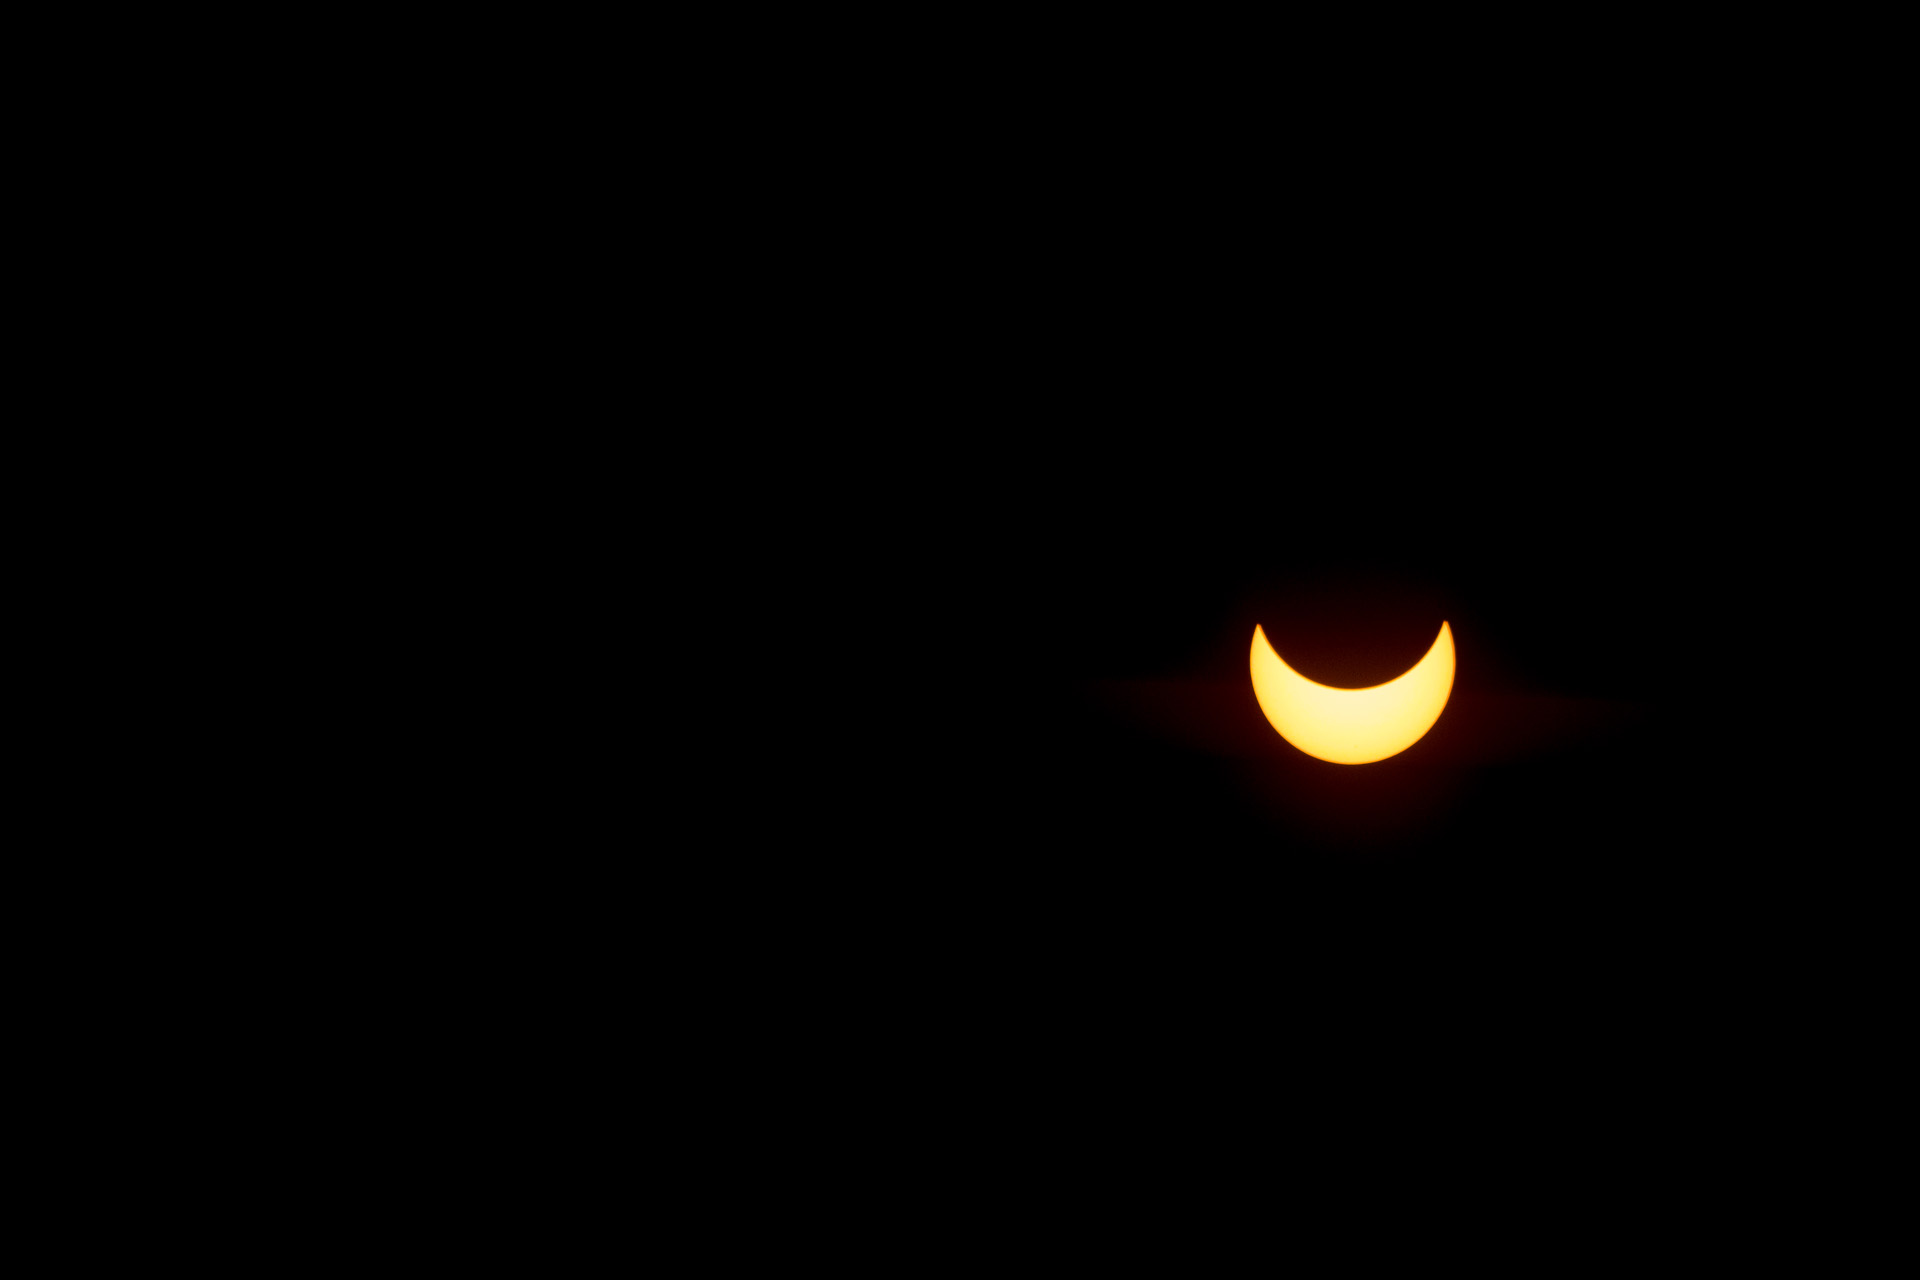 eclipse010916  (11)